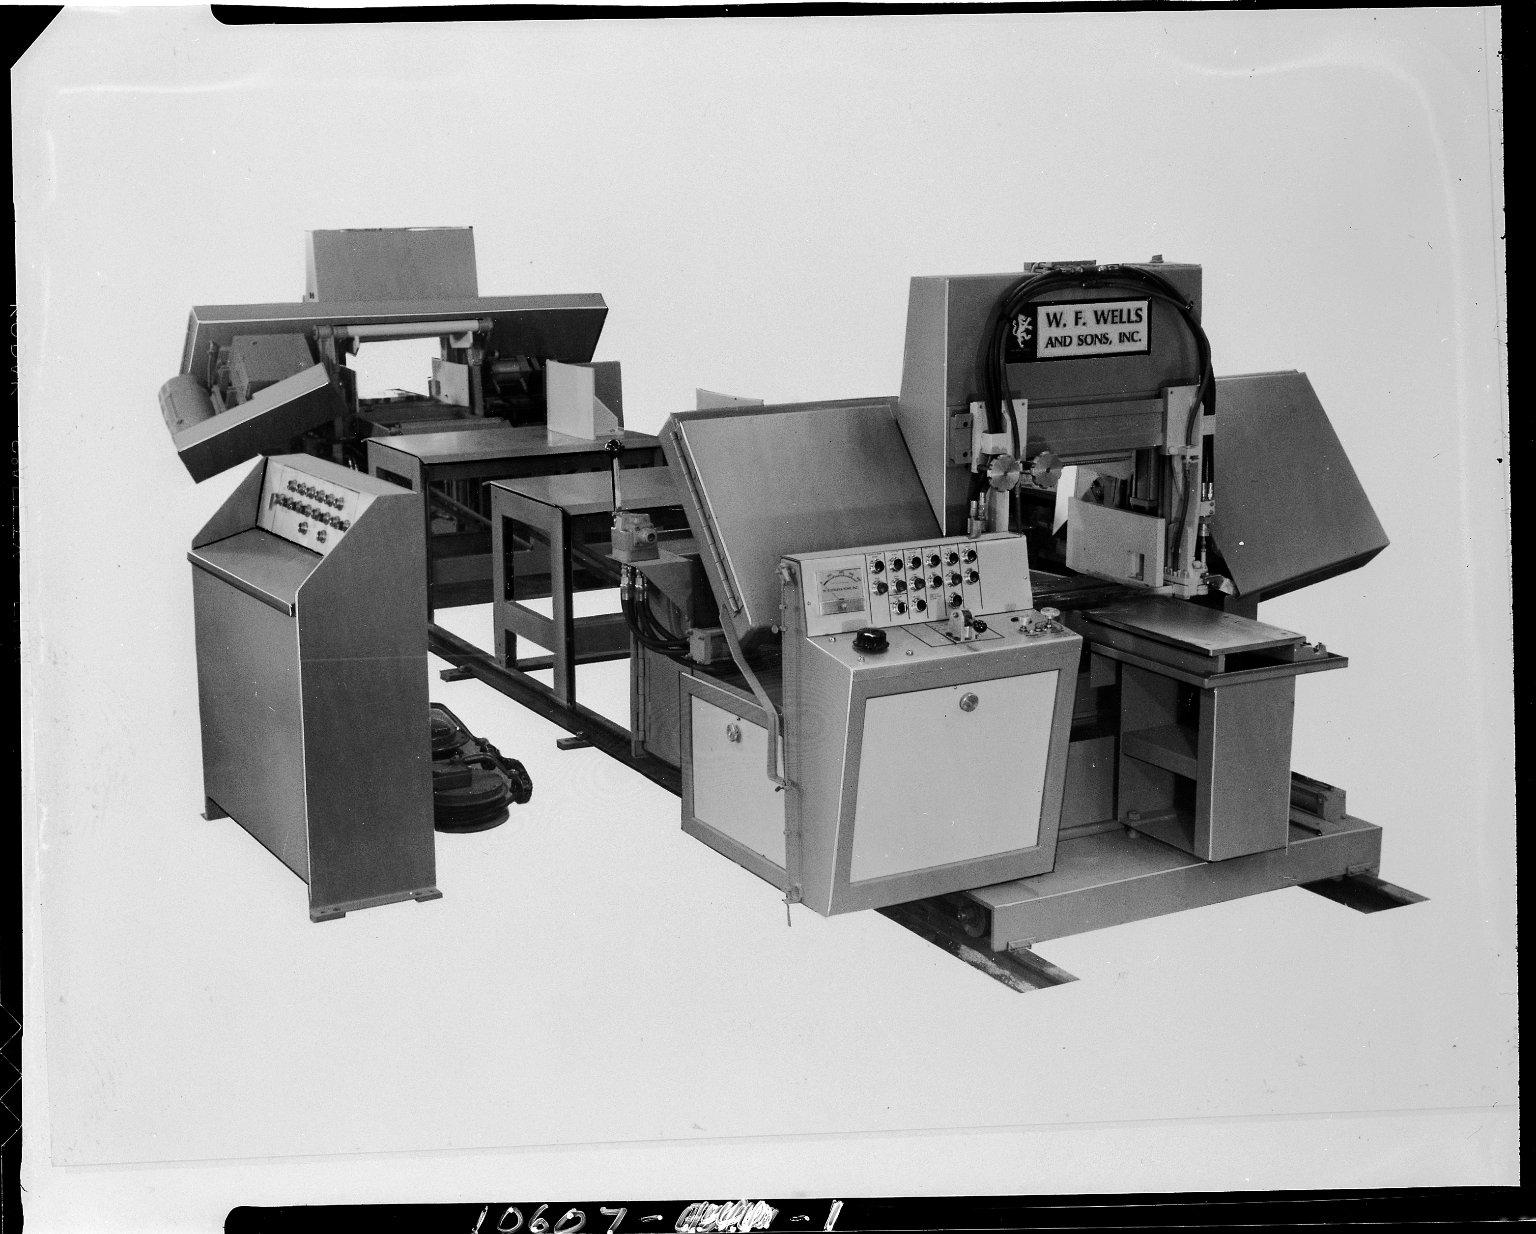 W. F. Wells and Sons, Inc., band saw system